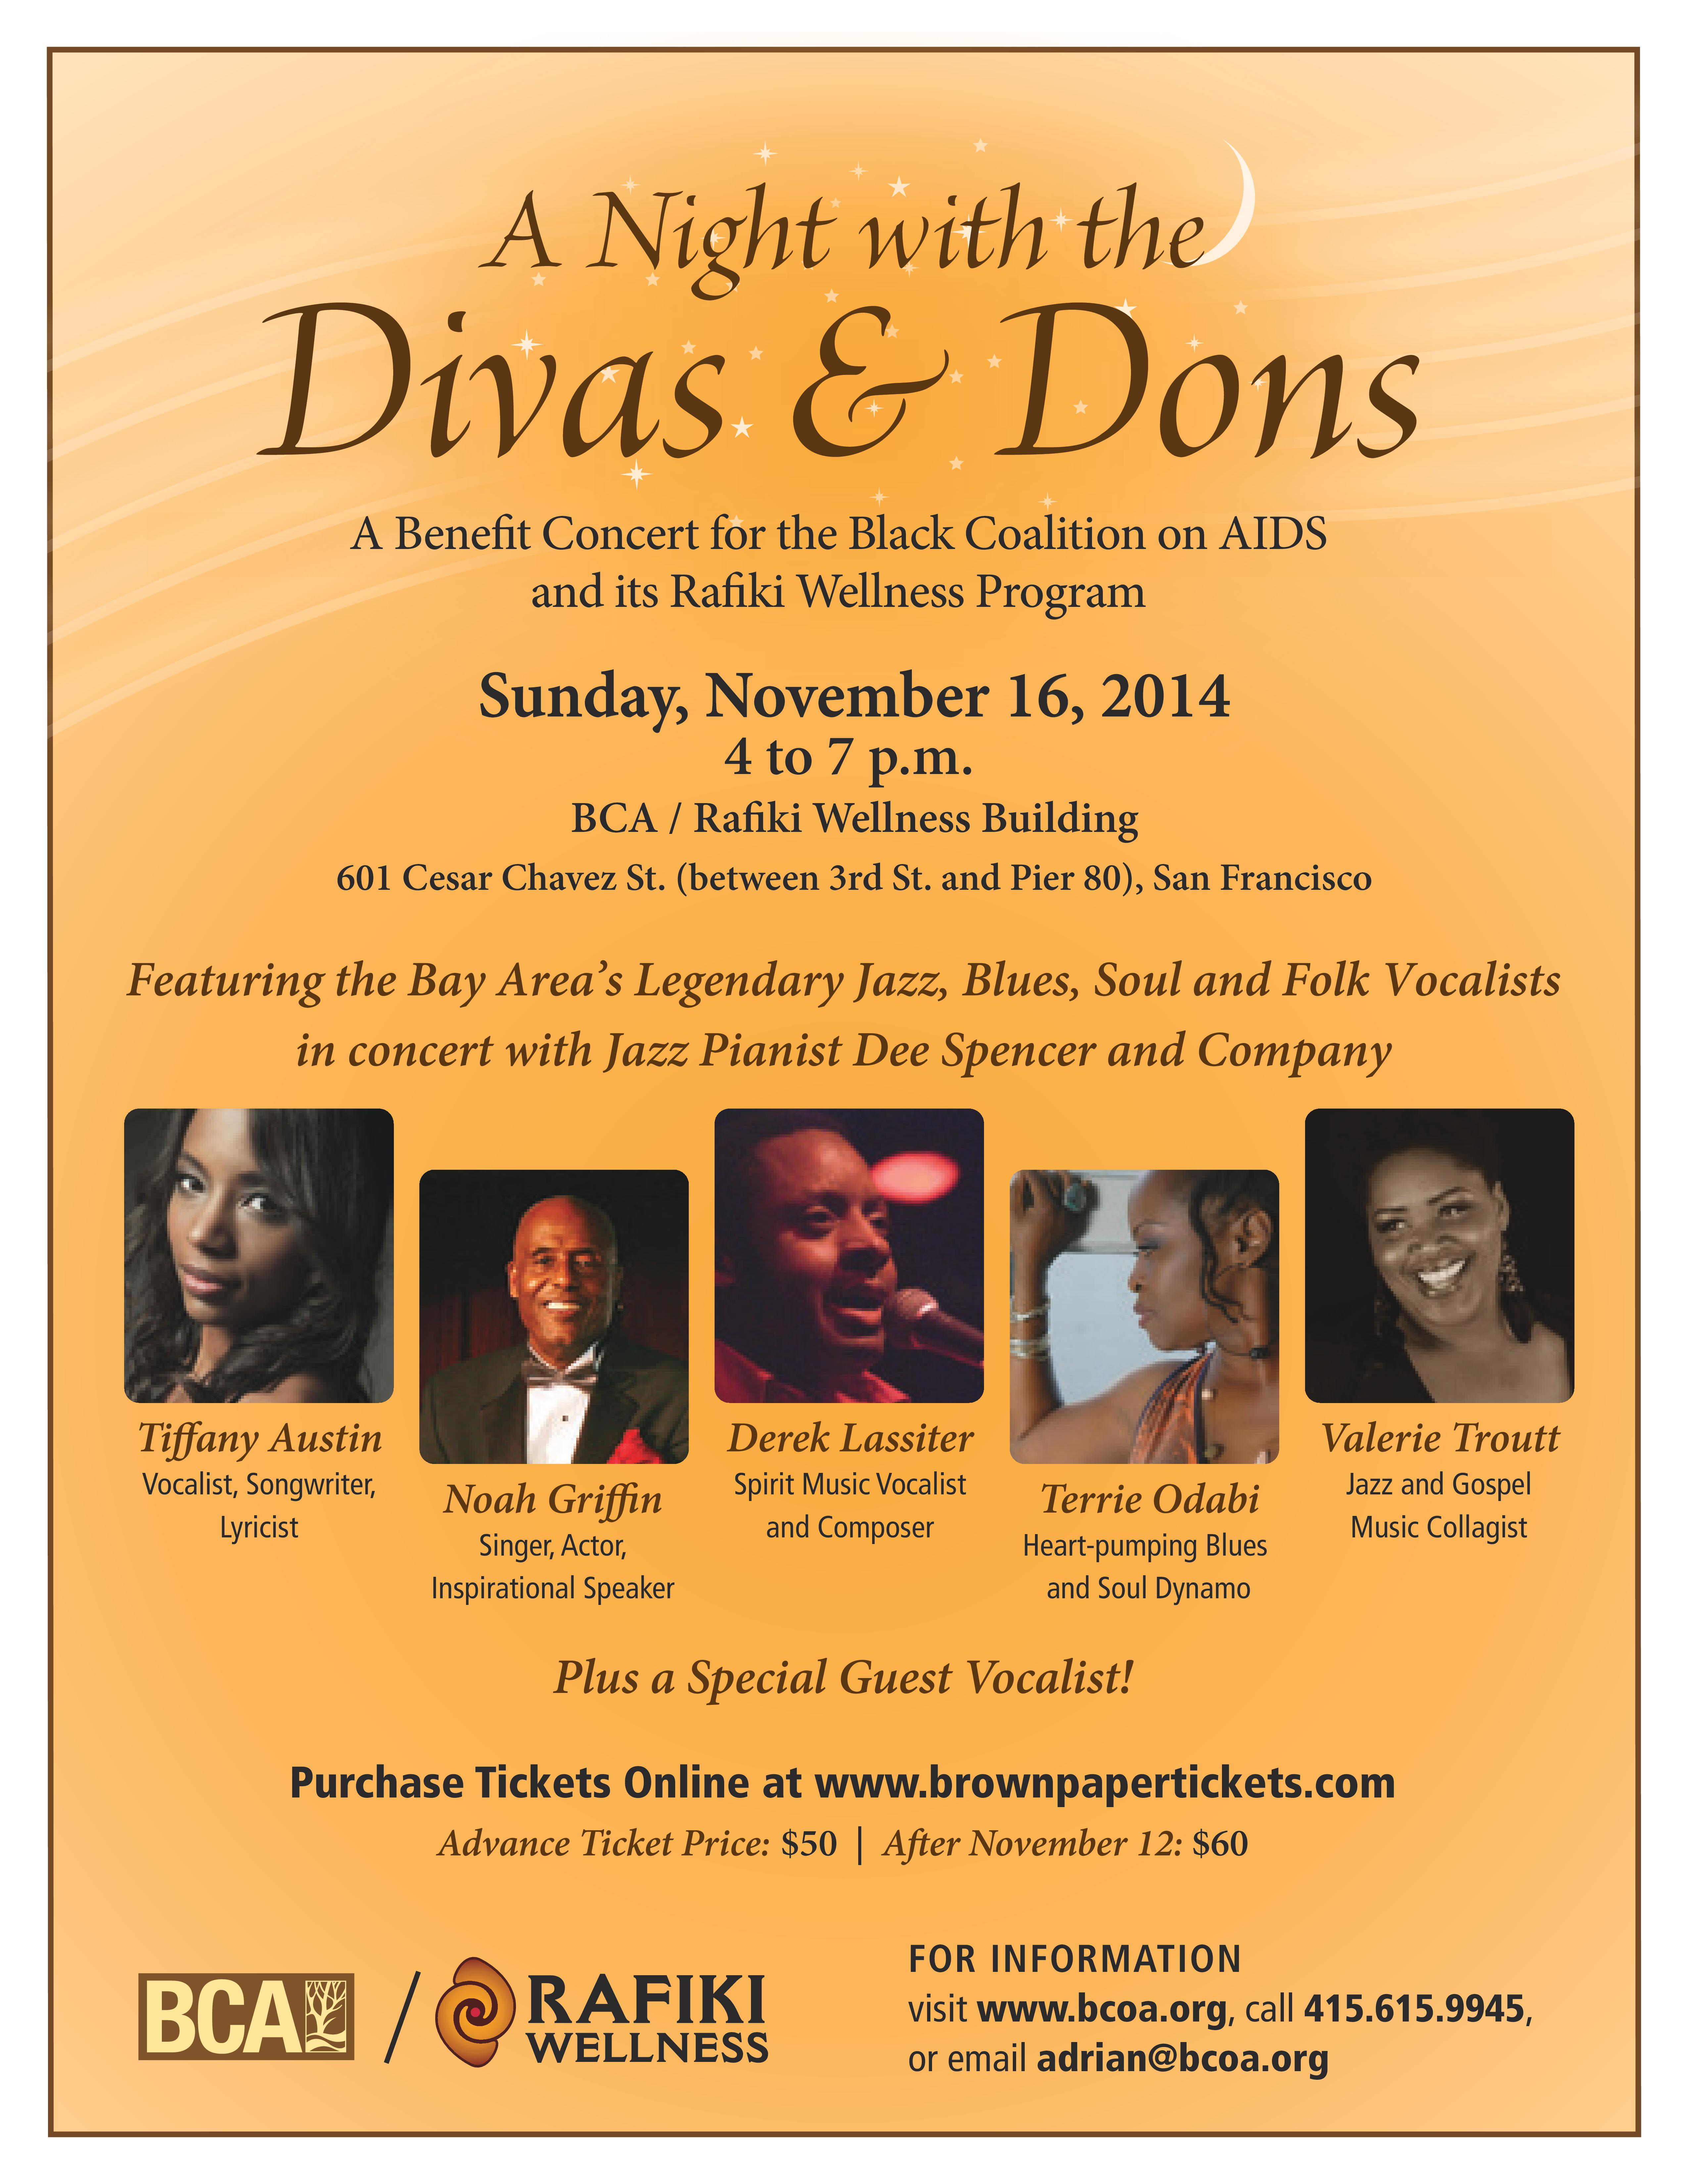 Night with the Divas & Dons - A Benefit for Black Coalition on AIDS and Rafiki Wellness Program - 11/16